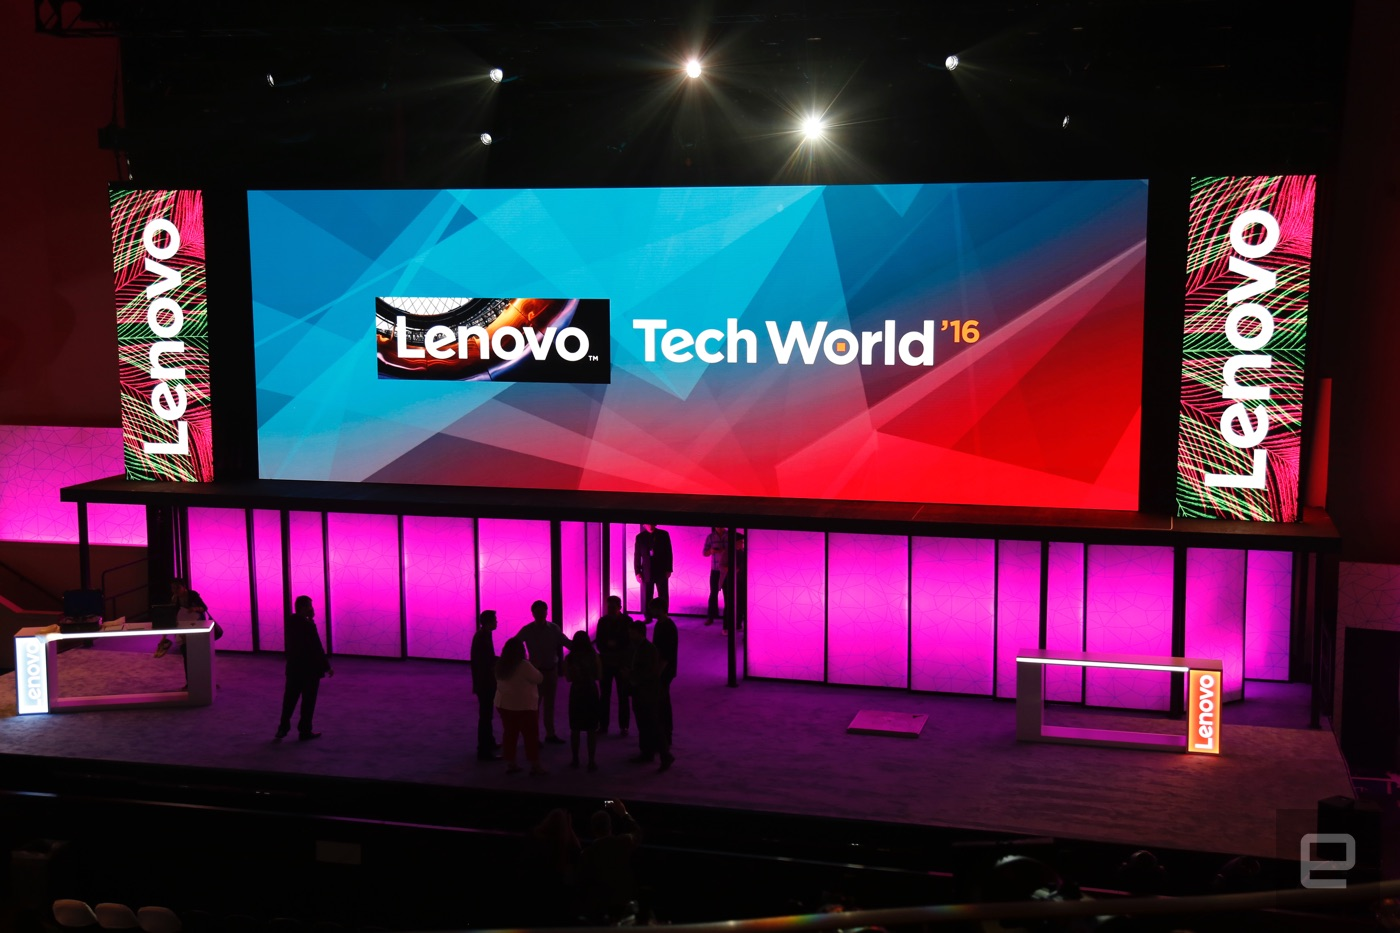 We're live from Lenovo Tech World 2016!